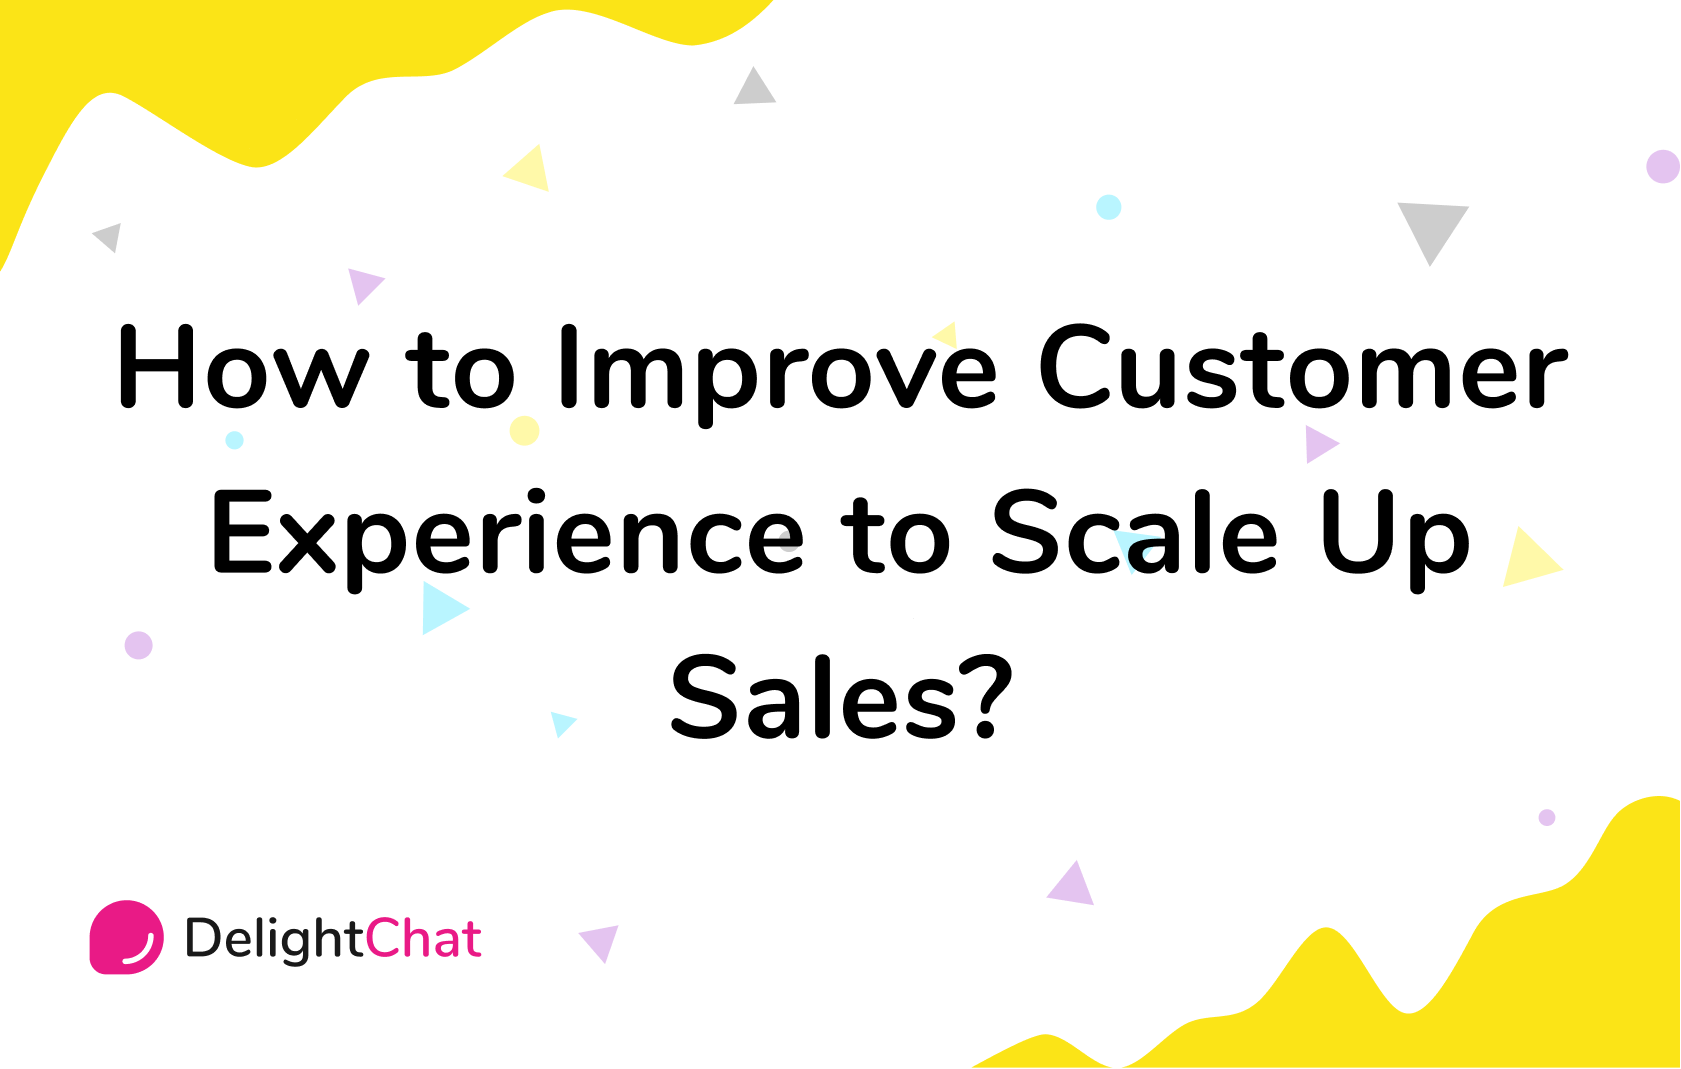 How to Improve Customer Experience to Scale Up Sales?